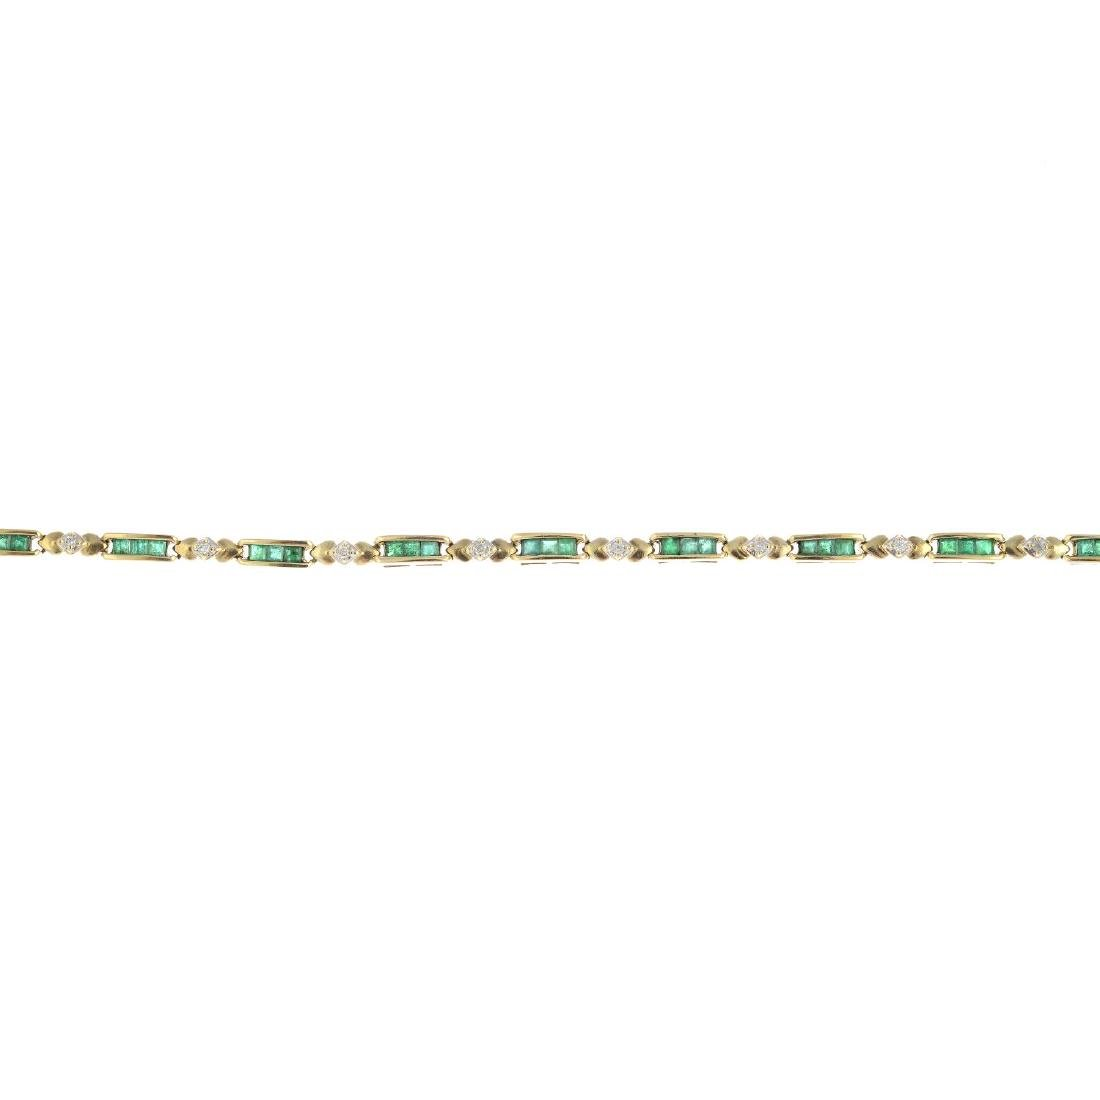 A 9ct gold emerald and diamond bracelet. Designed as a